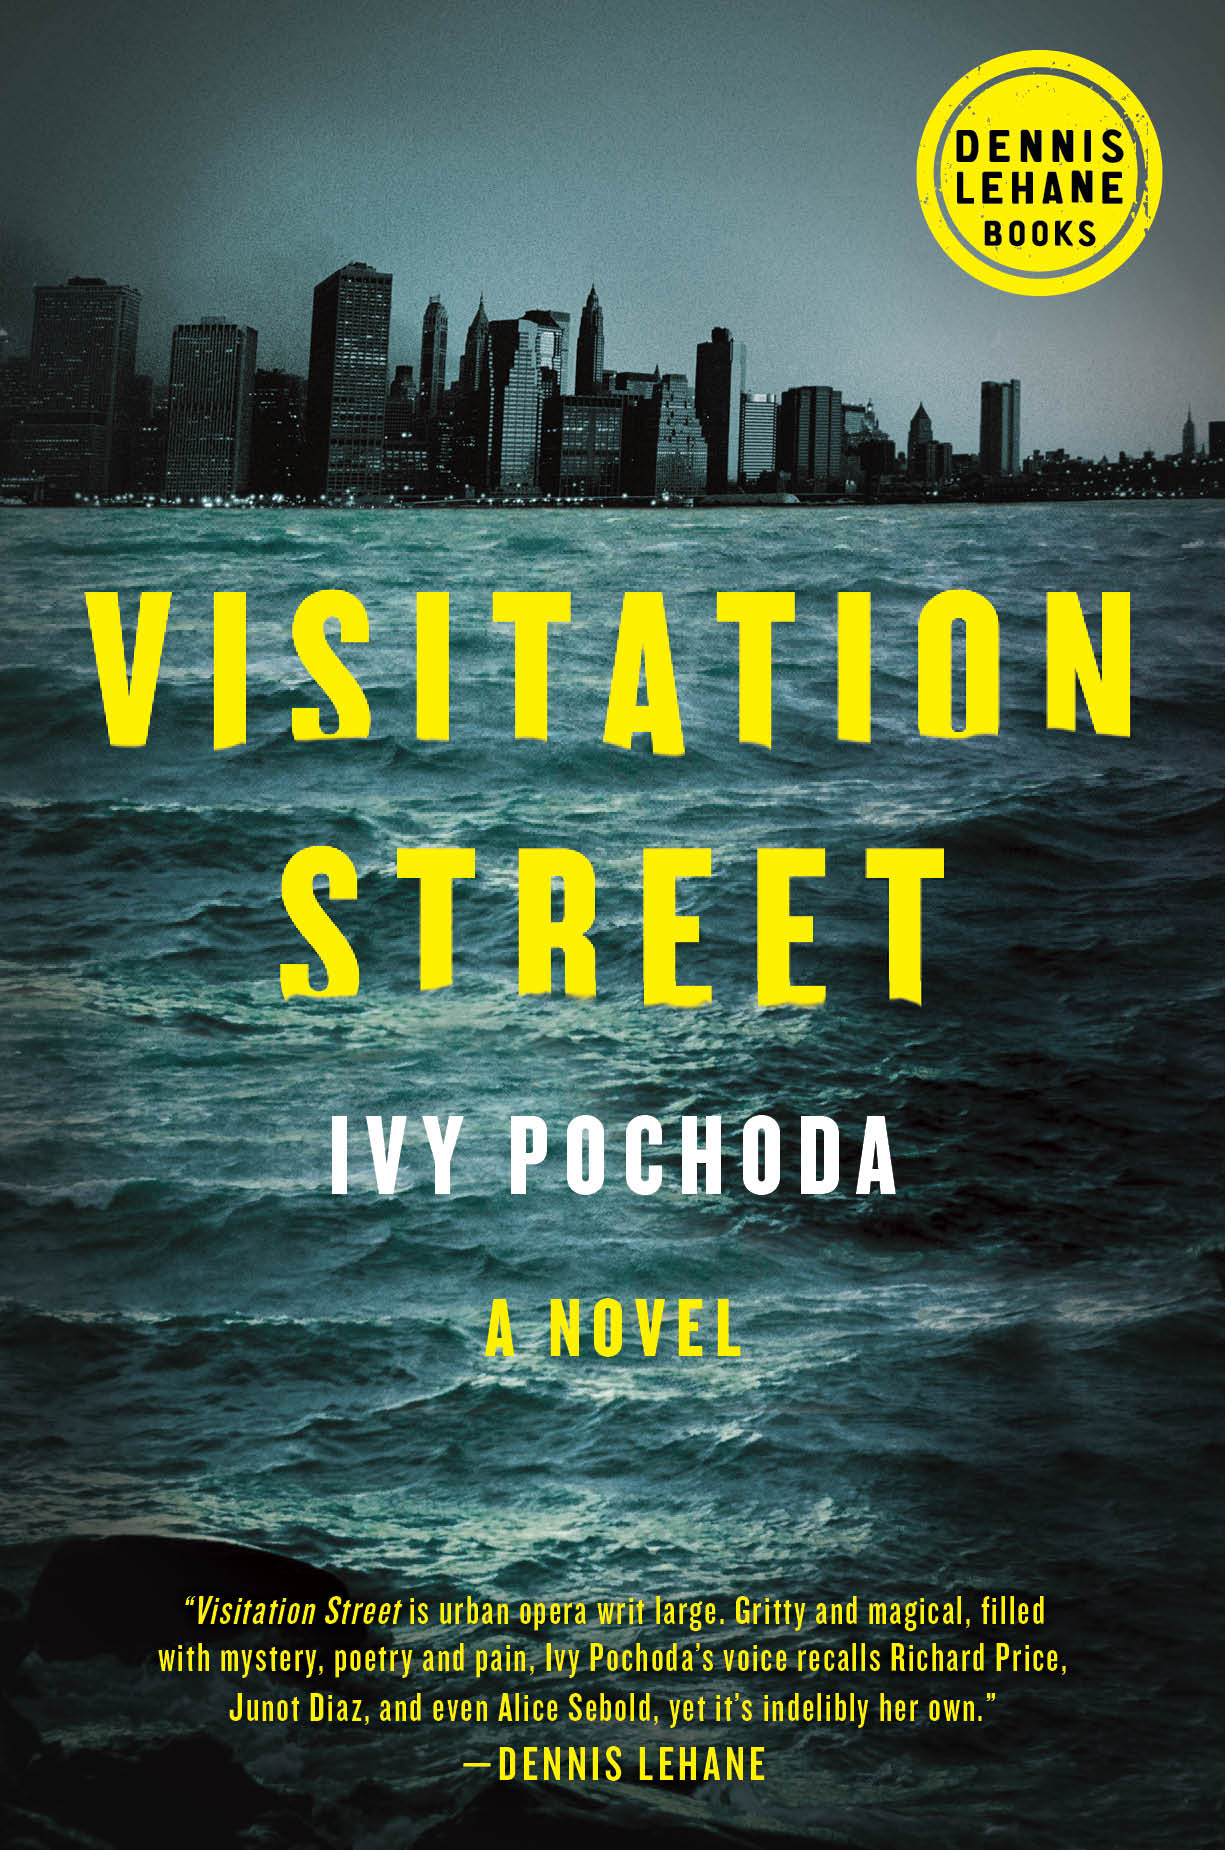 Visitation Street review roundup: - The New York Times Book ReviewThe New York TimesThe Boston Globe